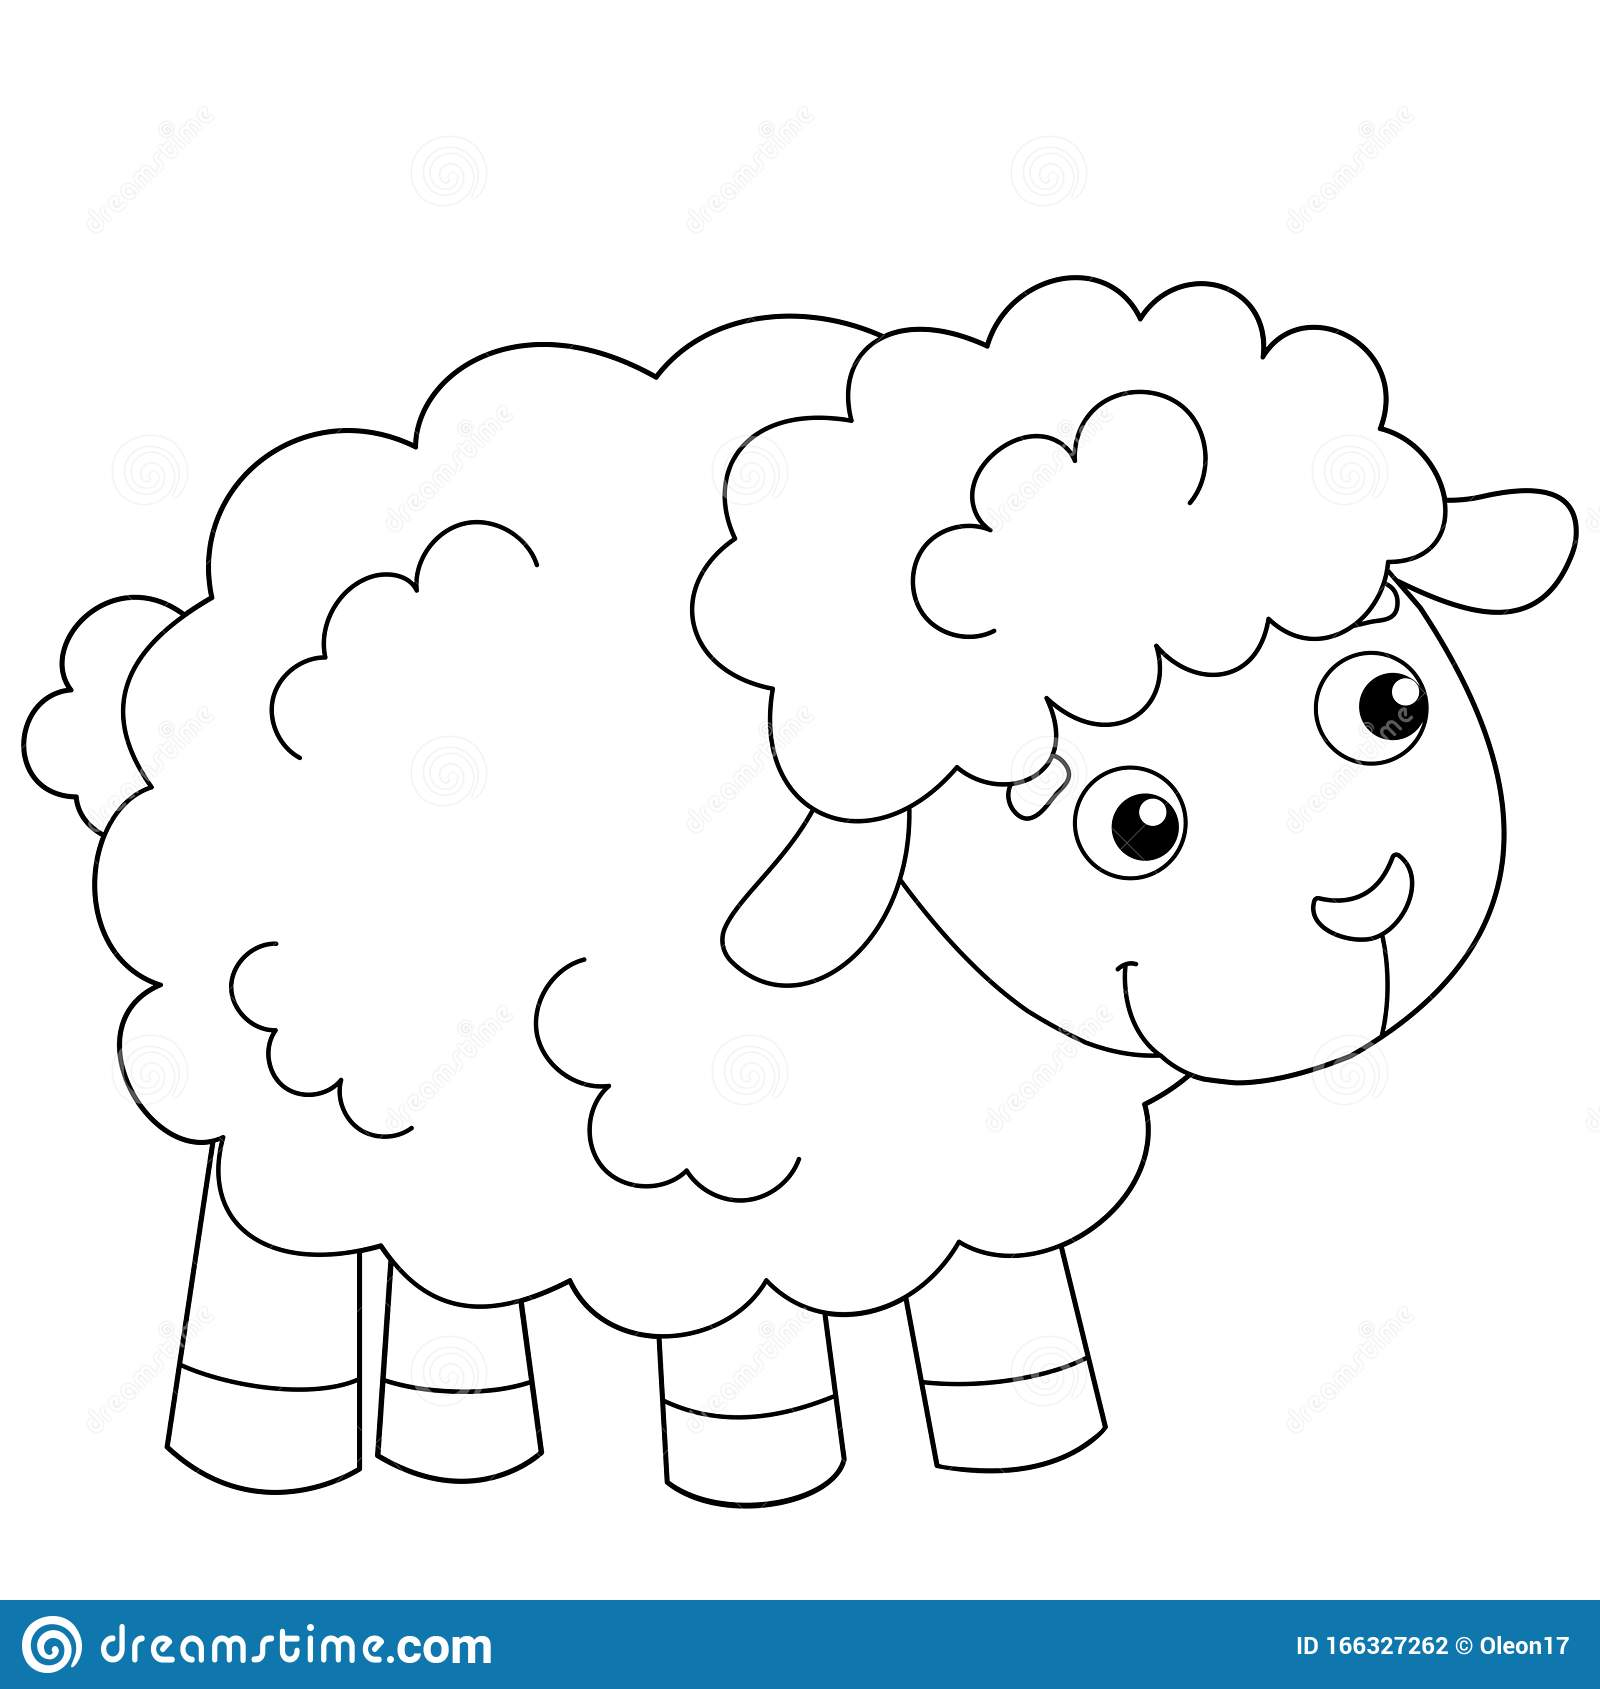 Sheep Colouring Page Stock Illustrations 92 Sheep Colouring Page Stock Illustrations Vectors Clipart Dreamstime